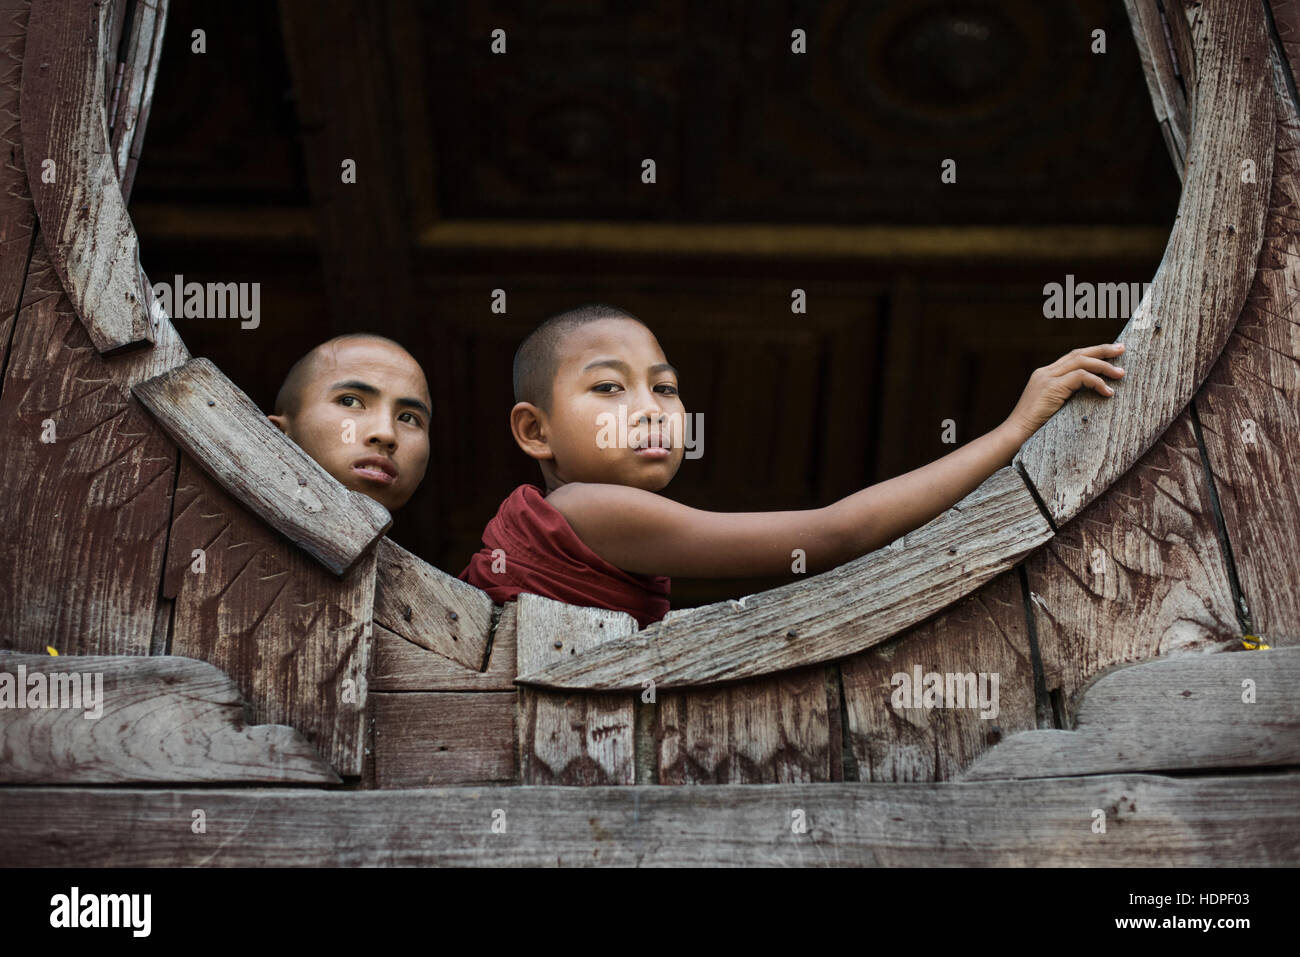 Novice Buddhist monks at Shwe Yan Pyay Wooden Monastery in Nyaungshwe, Myanmar. - Stock Image